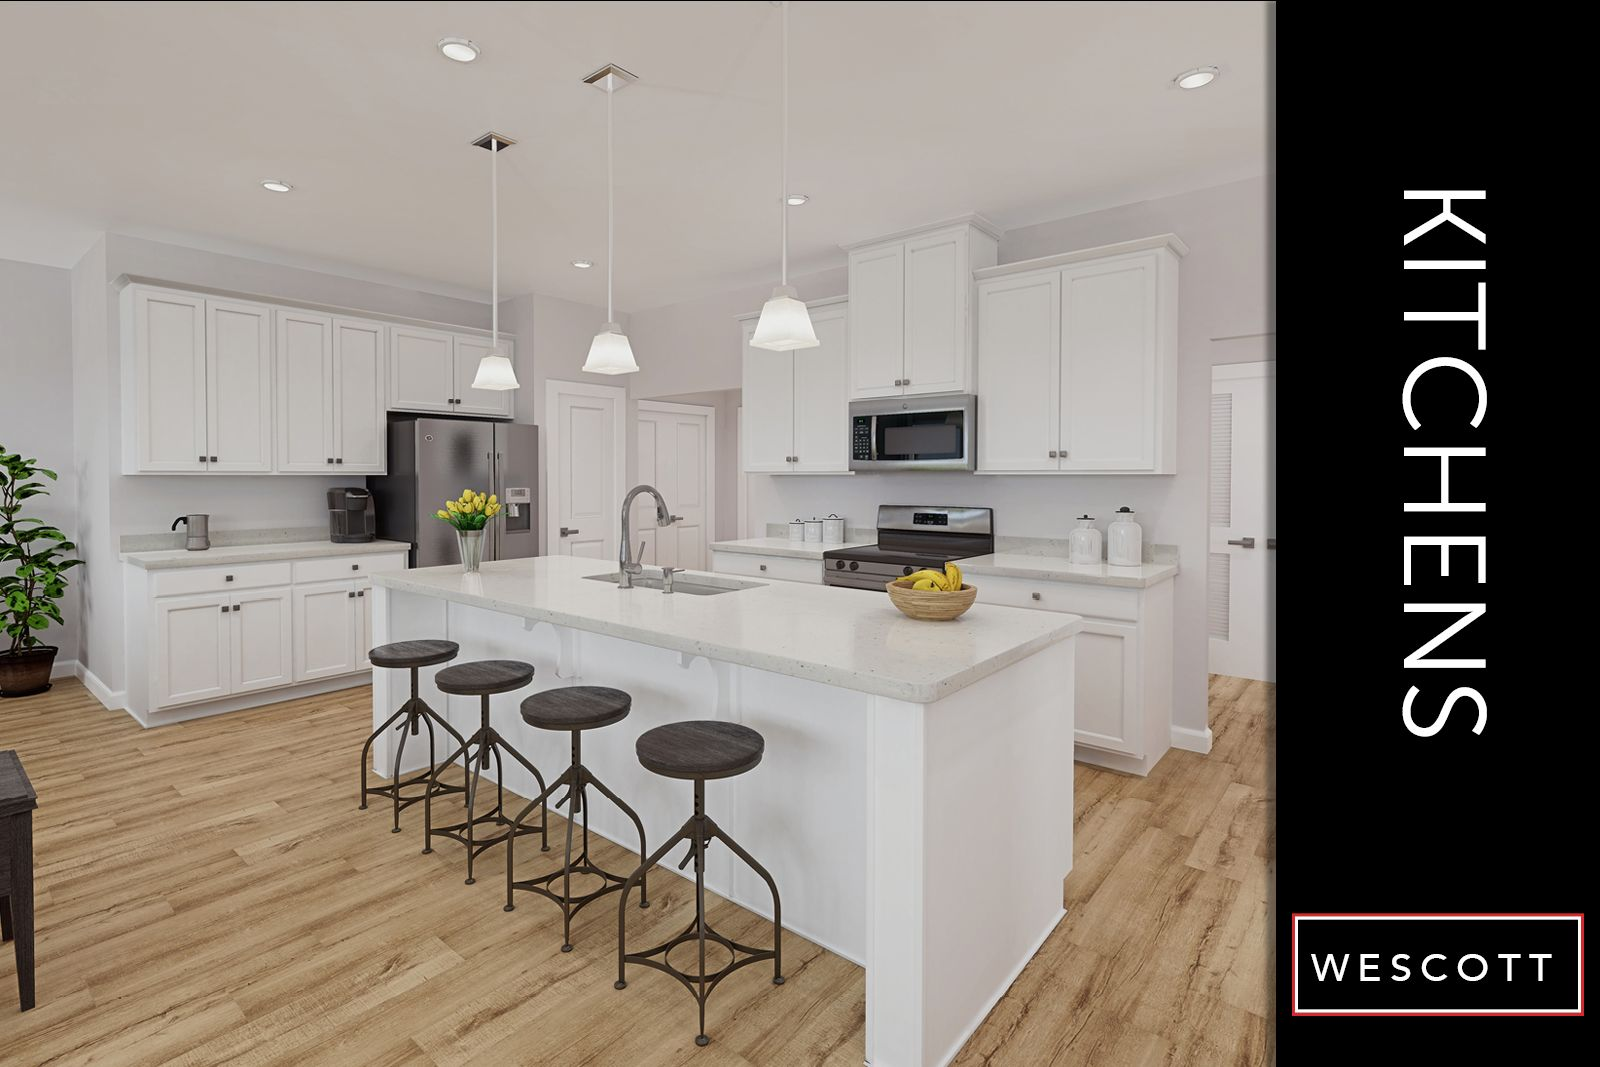 Now Selling! Come see why we've sold over 20 homes since February!:Now scheduling VIP Appointments! 1-level condos in Swift Creek's newest maintenance-free, community from the $230s! Schedule yourvisit today!